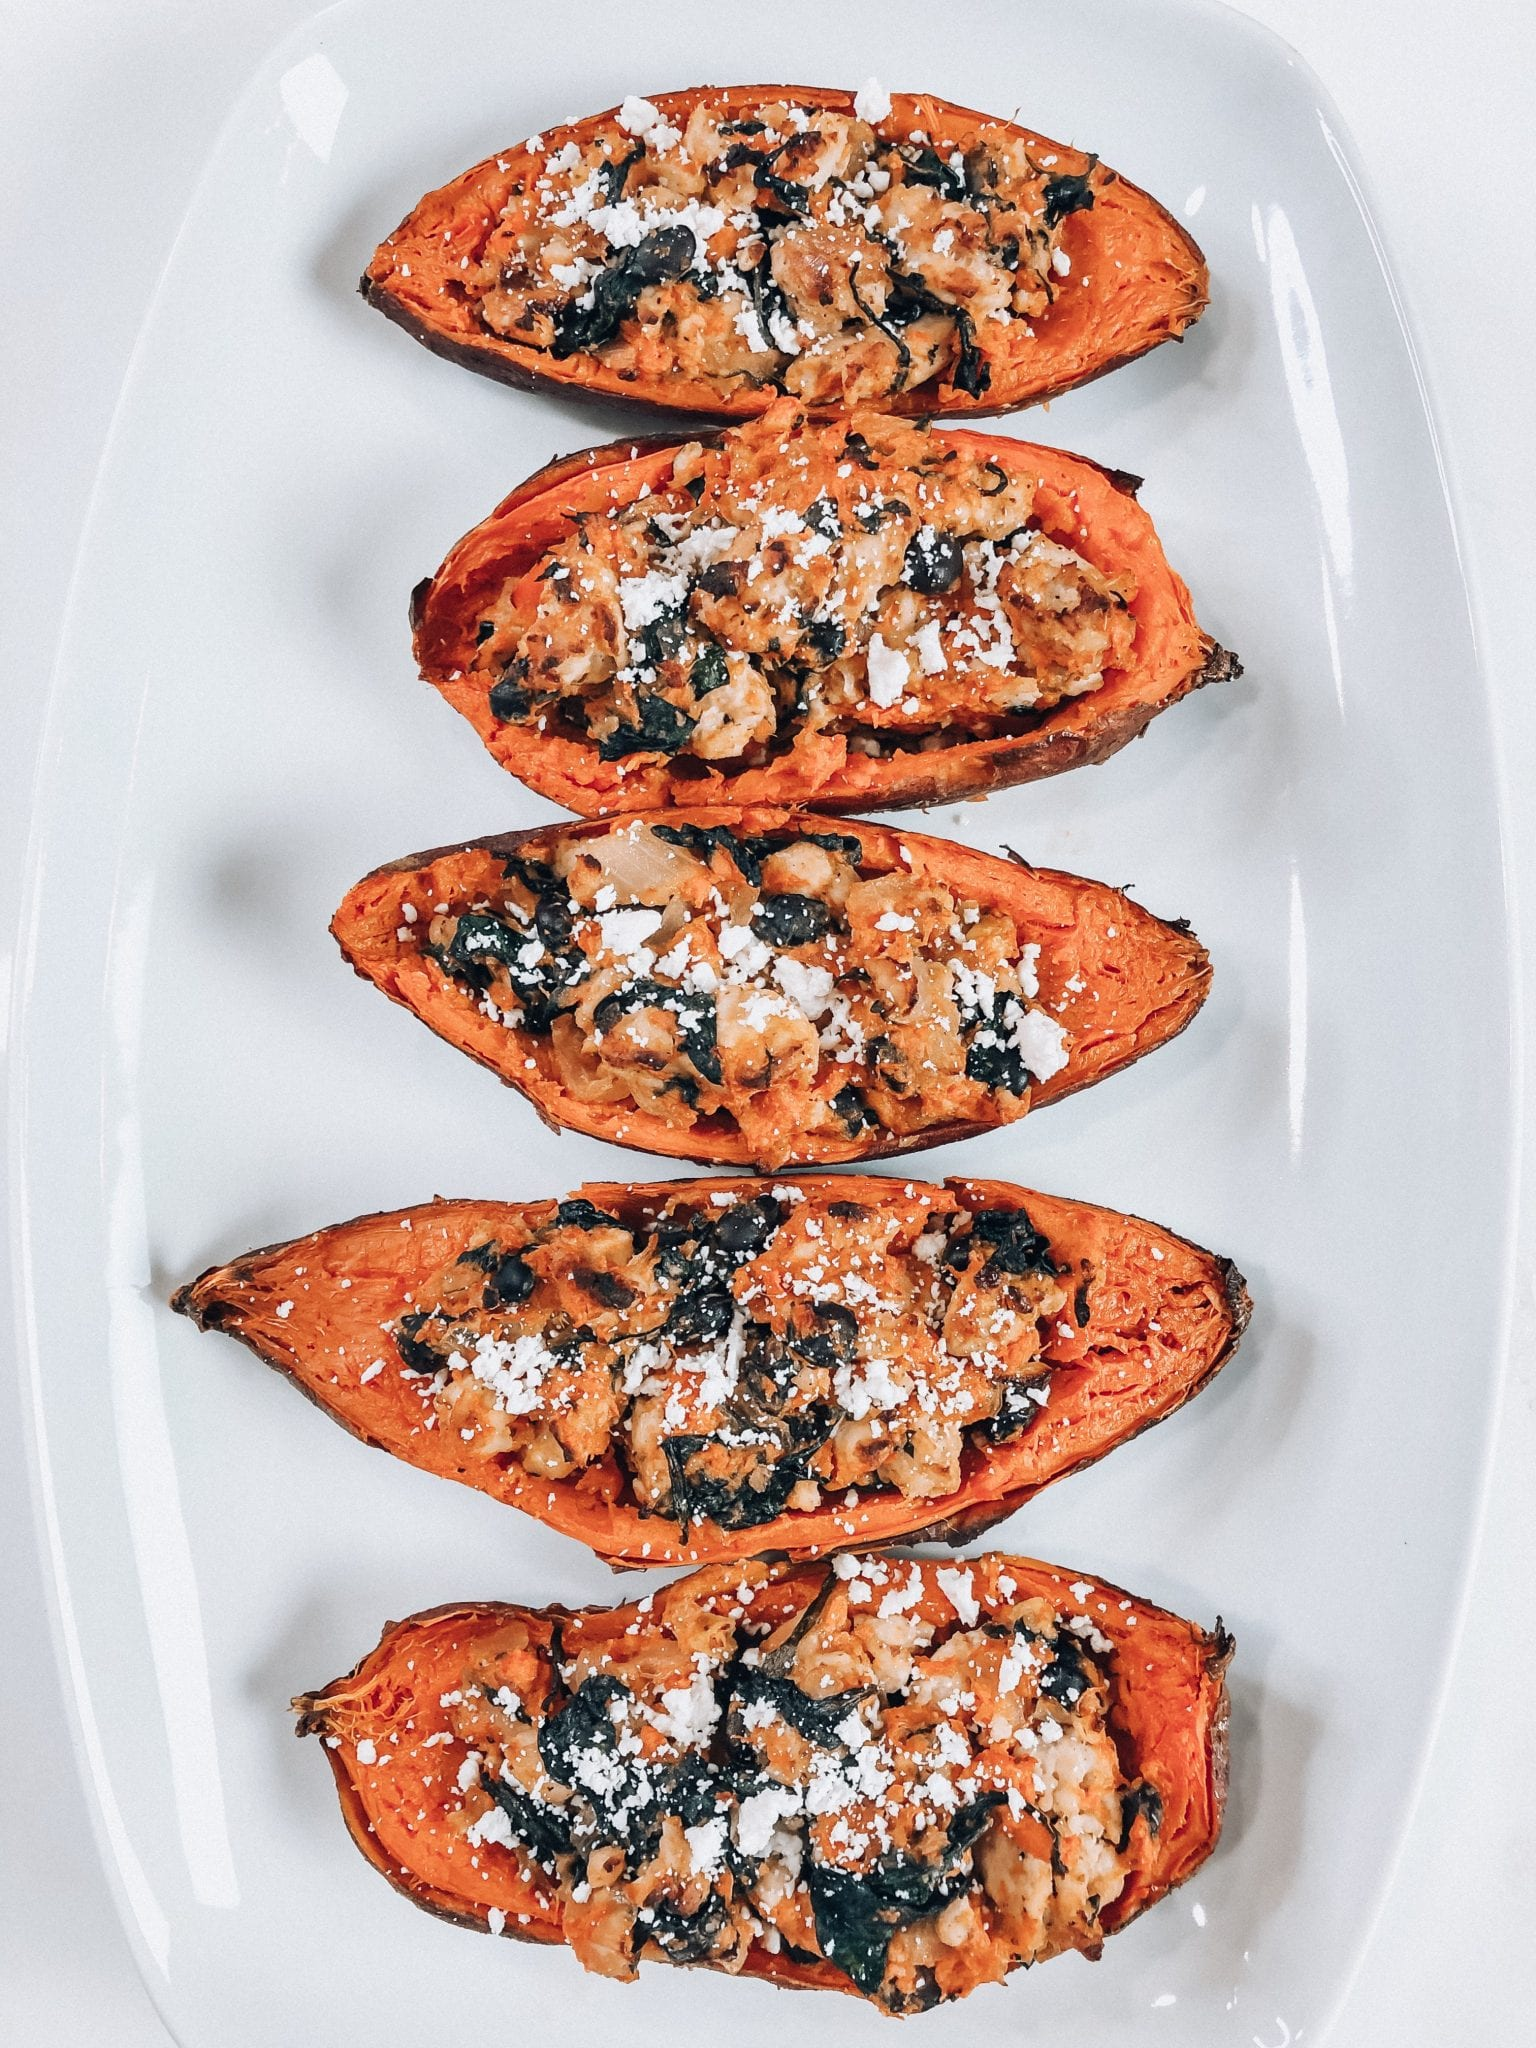 Healthy sweet potato skins, an easy, protein-packed snack for busy days or game day!